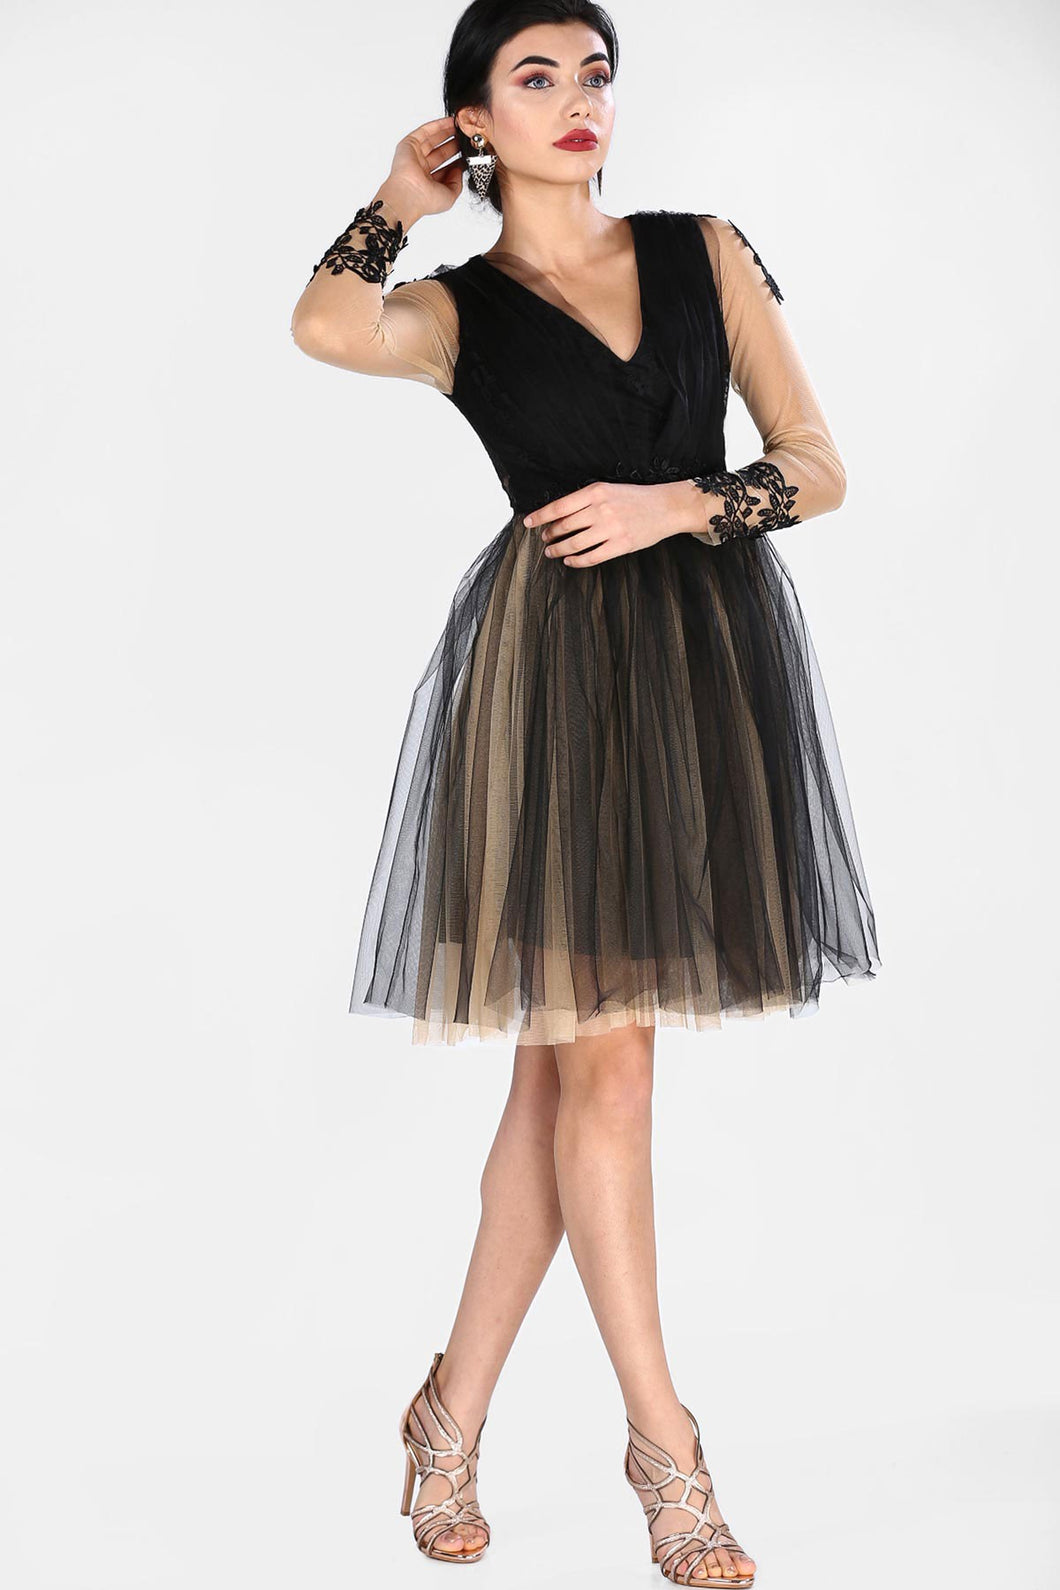 Tulle Detail Black Dress